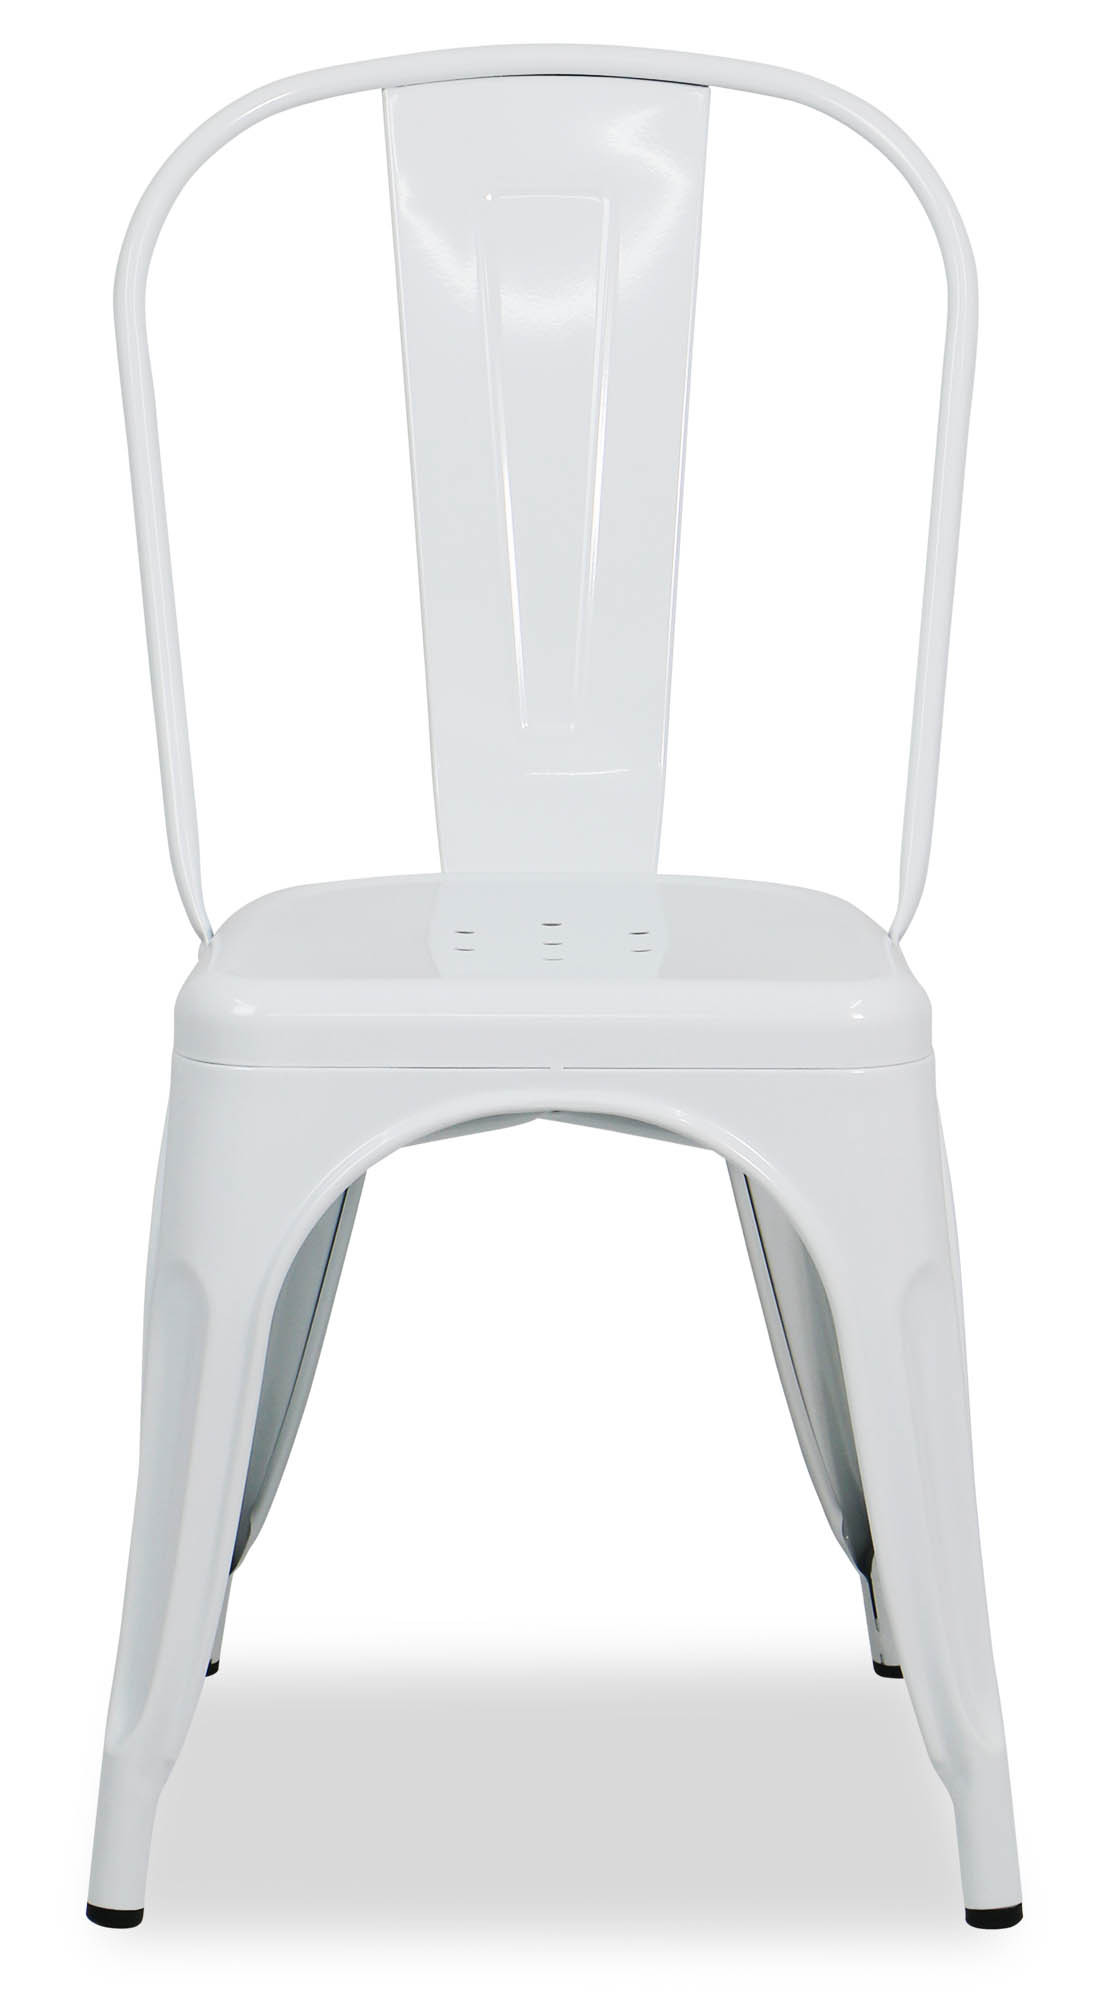 Retro Dining Chair Retro Metal Chair White Dining Chairs Dining Room